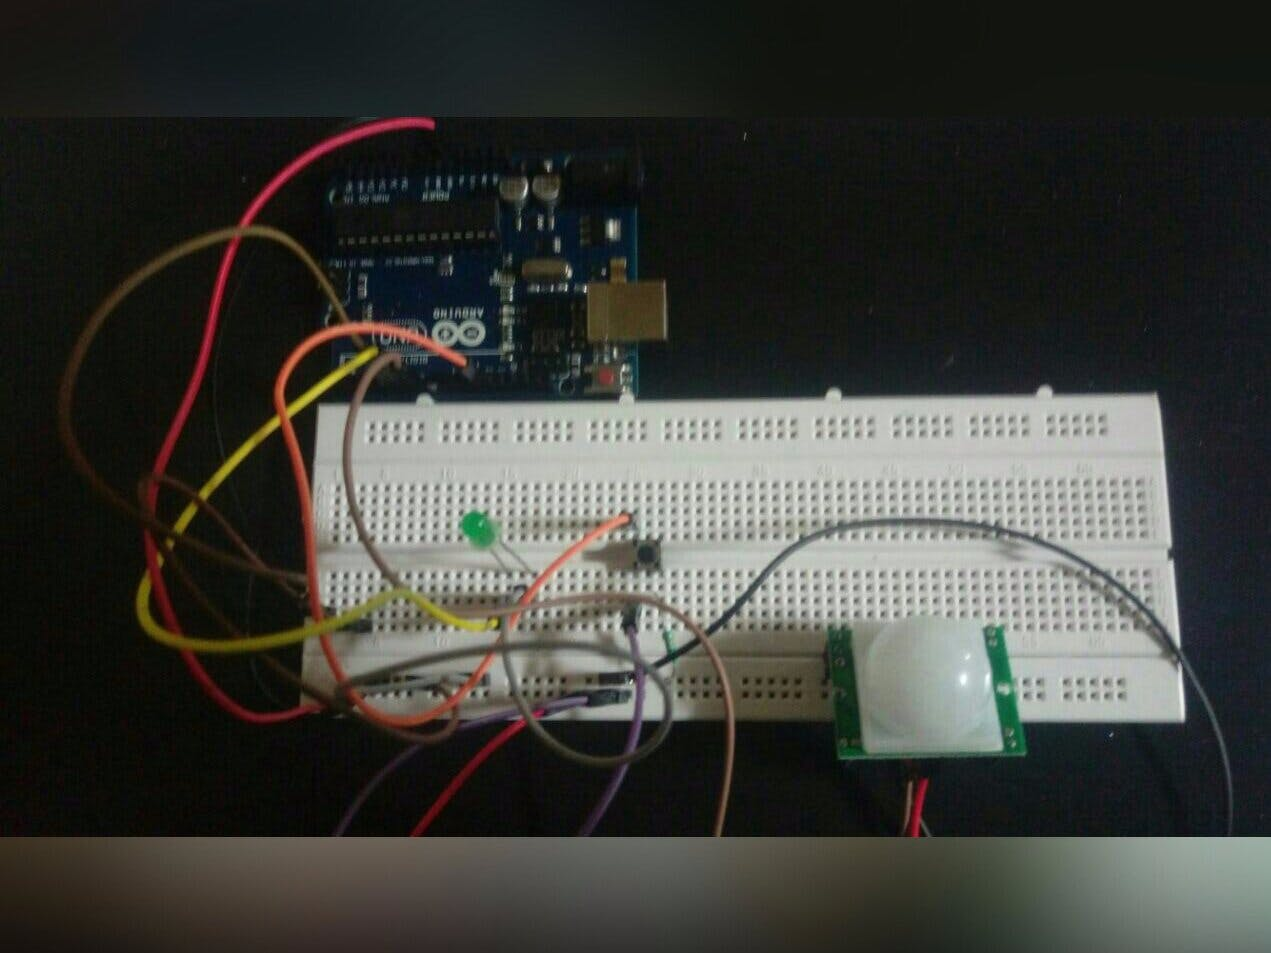 Buzzer Alarm System With Help Of Arduino